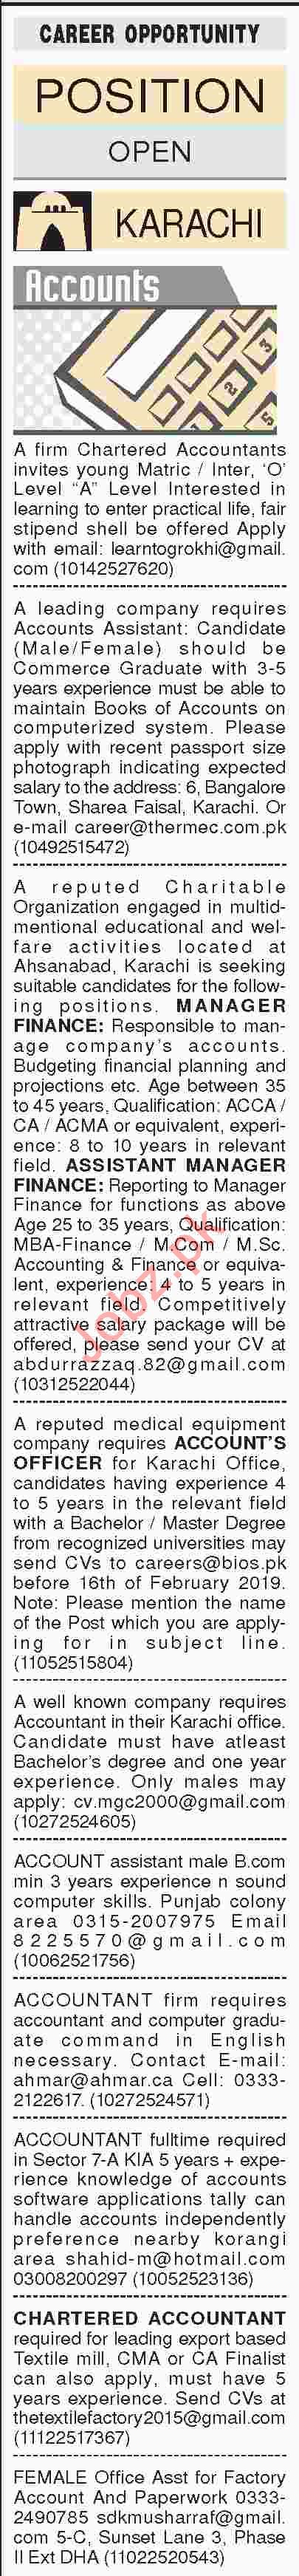 Dawn Sunday Classified Ads 10th Feb 2019 for Accounts Staff